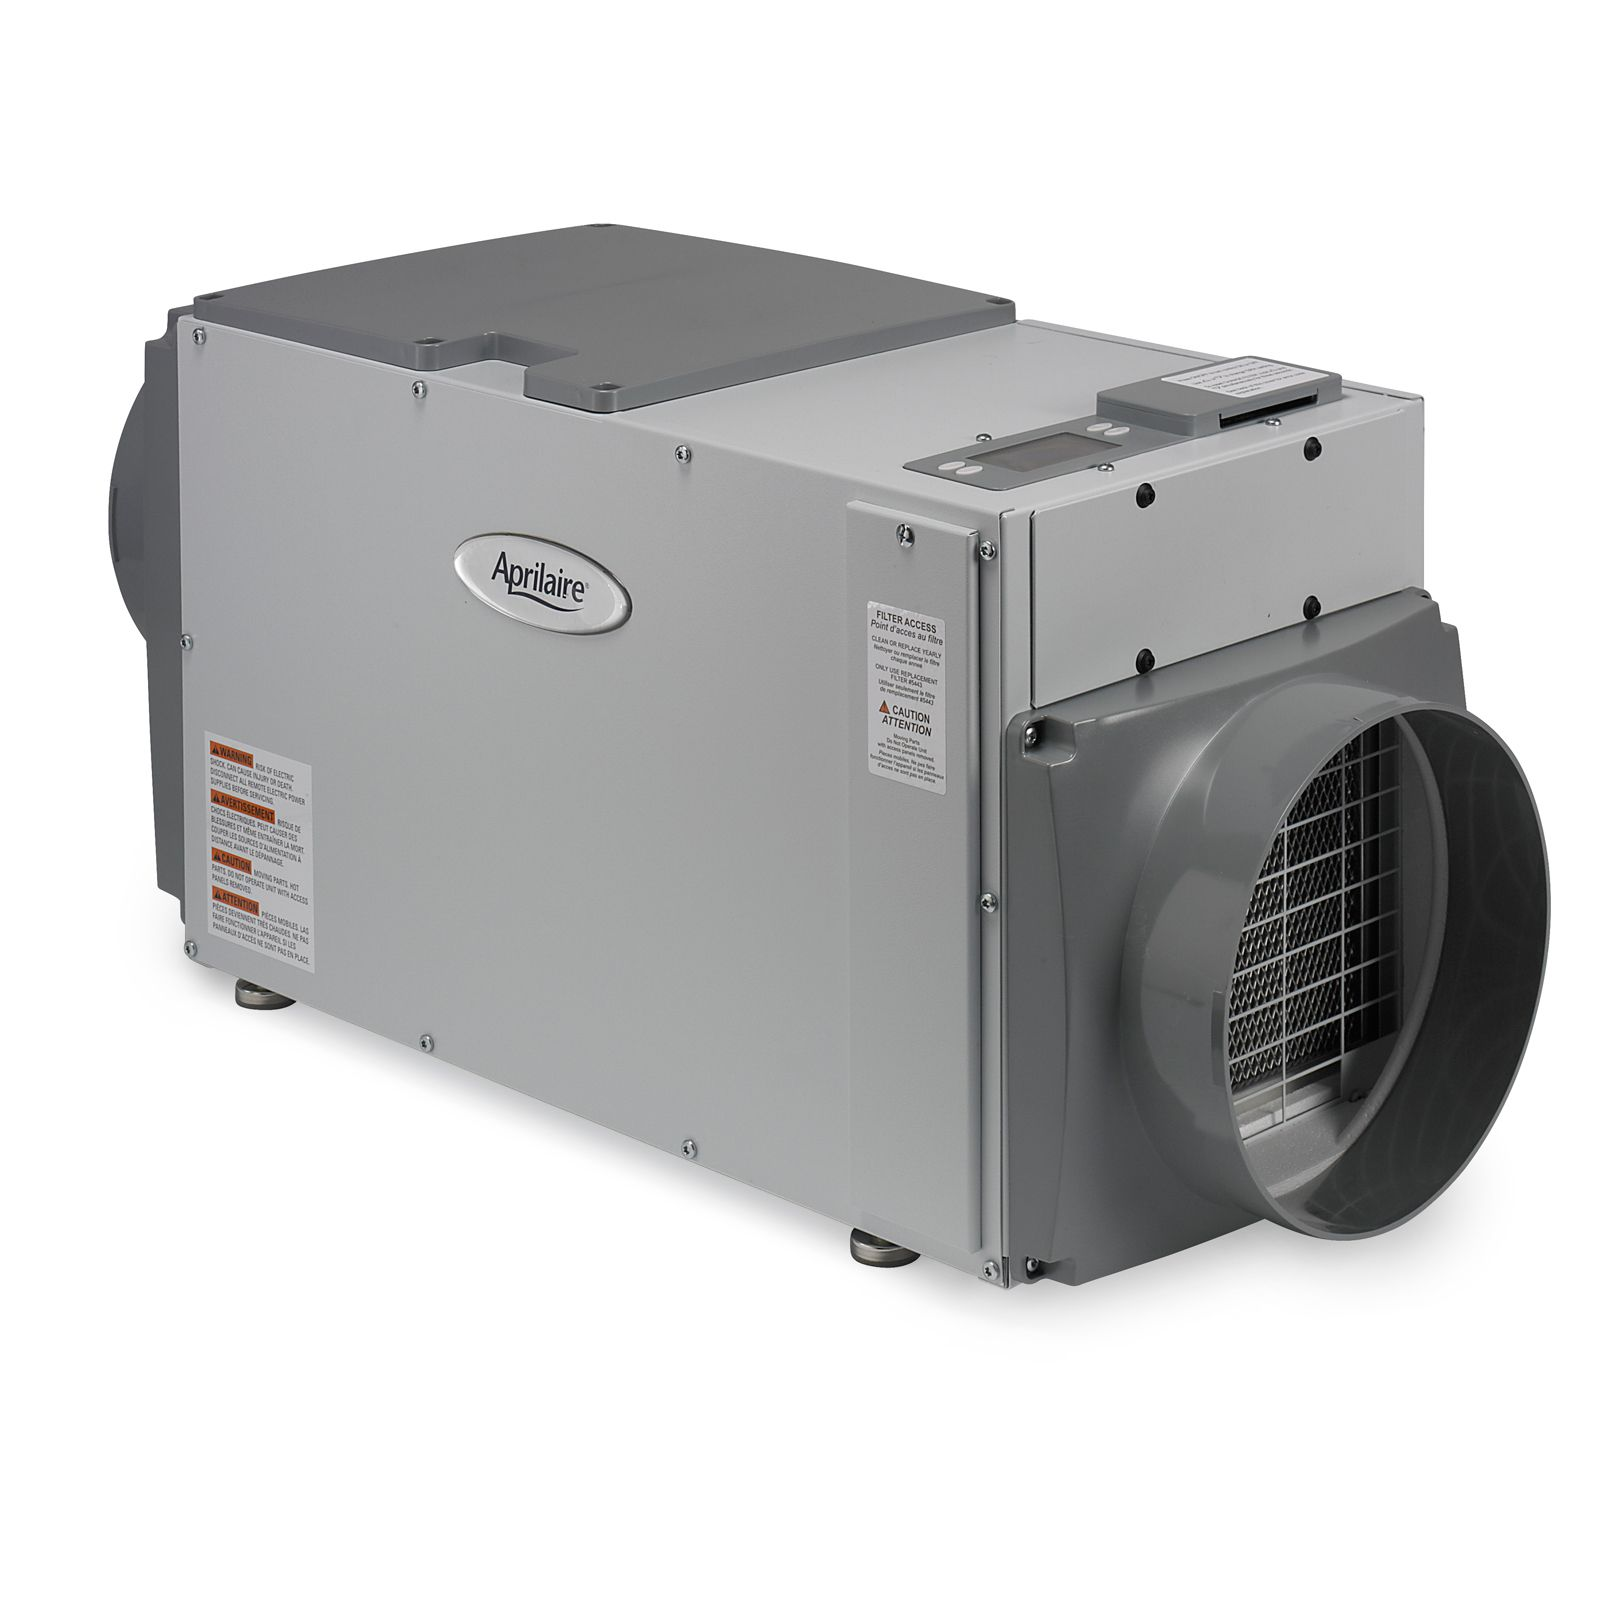 Aprilaire 8191 - Ventilator With Dehumidification, 100 CFM, 70 pint/day, 6.3 Amps, 120/1/60, Energy Star Qualified